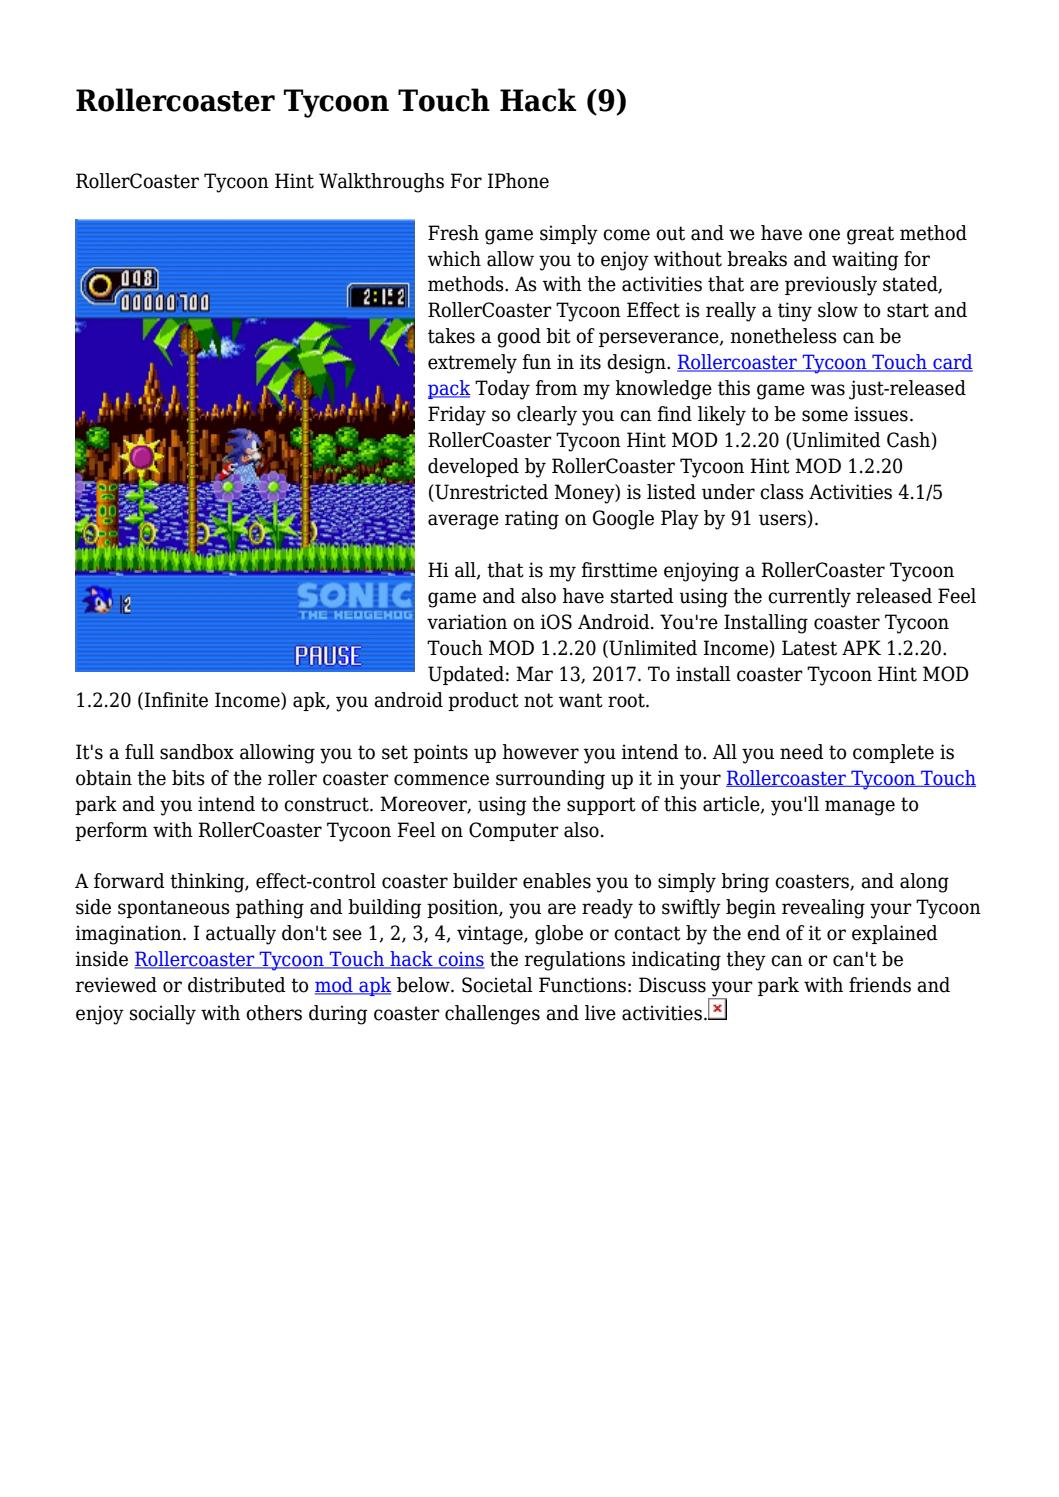 Rollercoaster Tycoon Touch Hack (9)    by discreetbigot4092